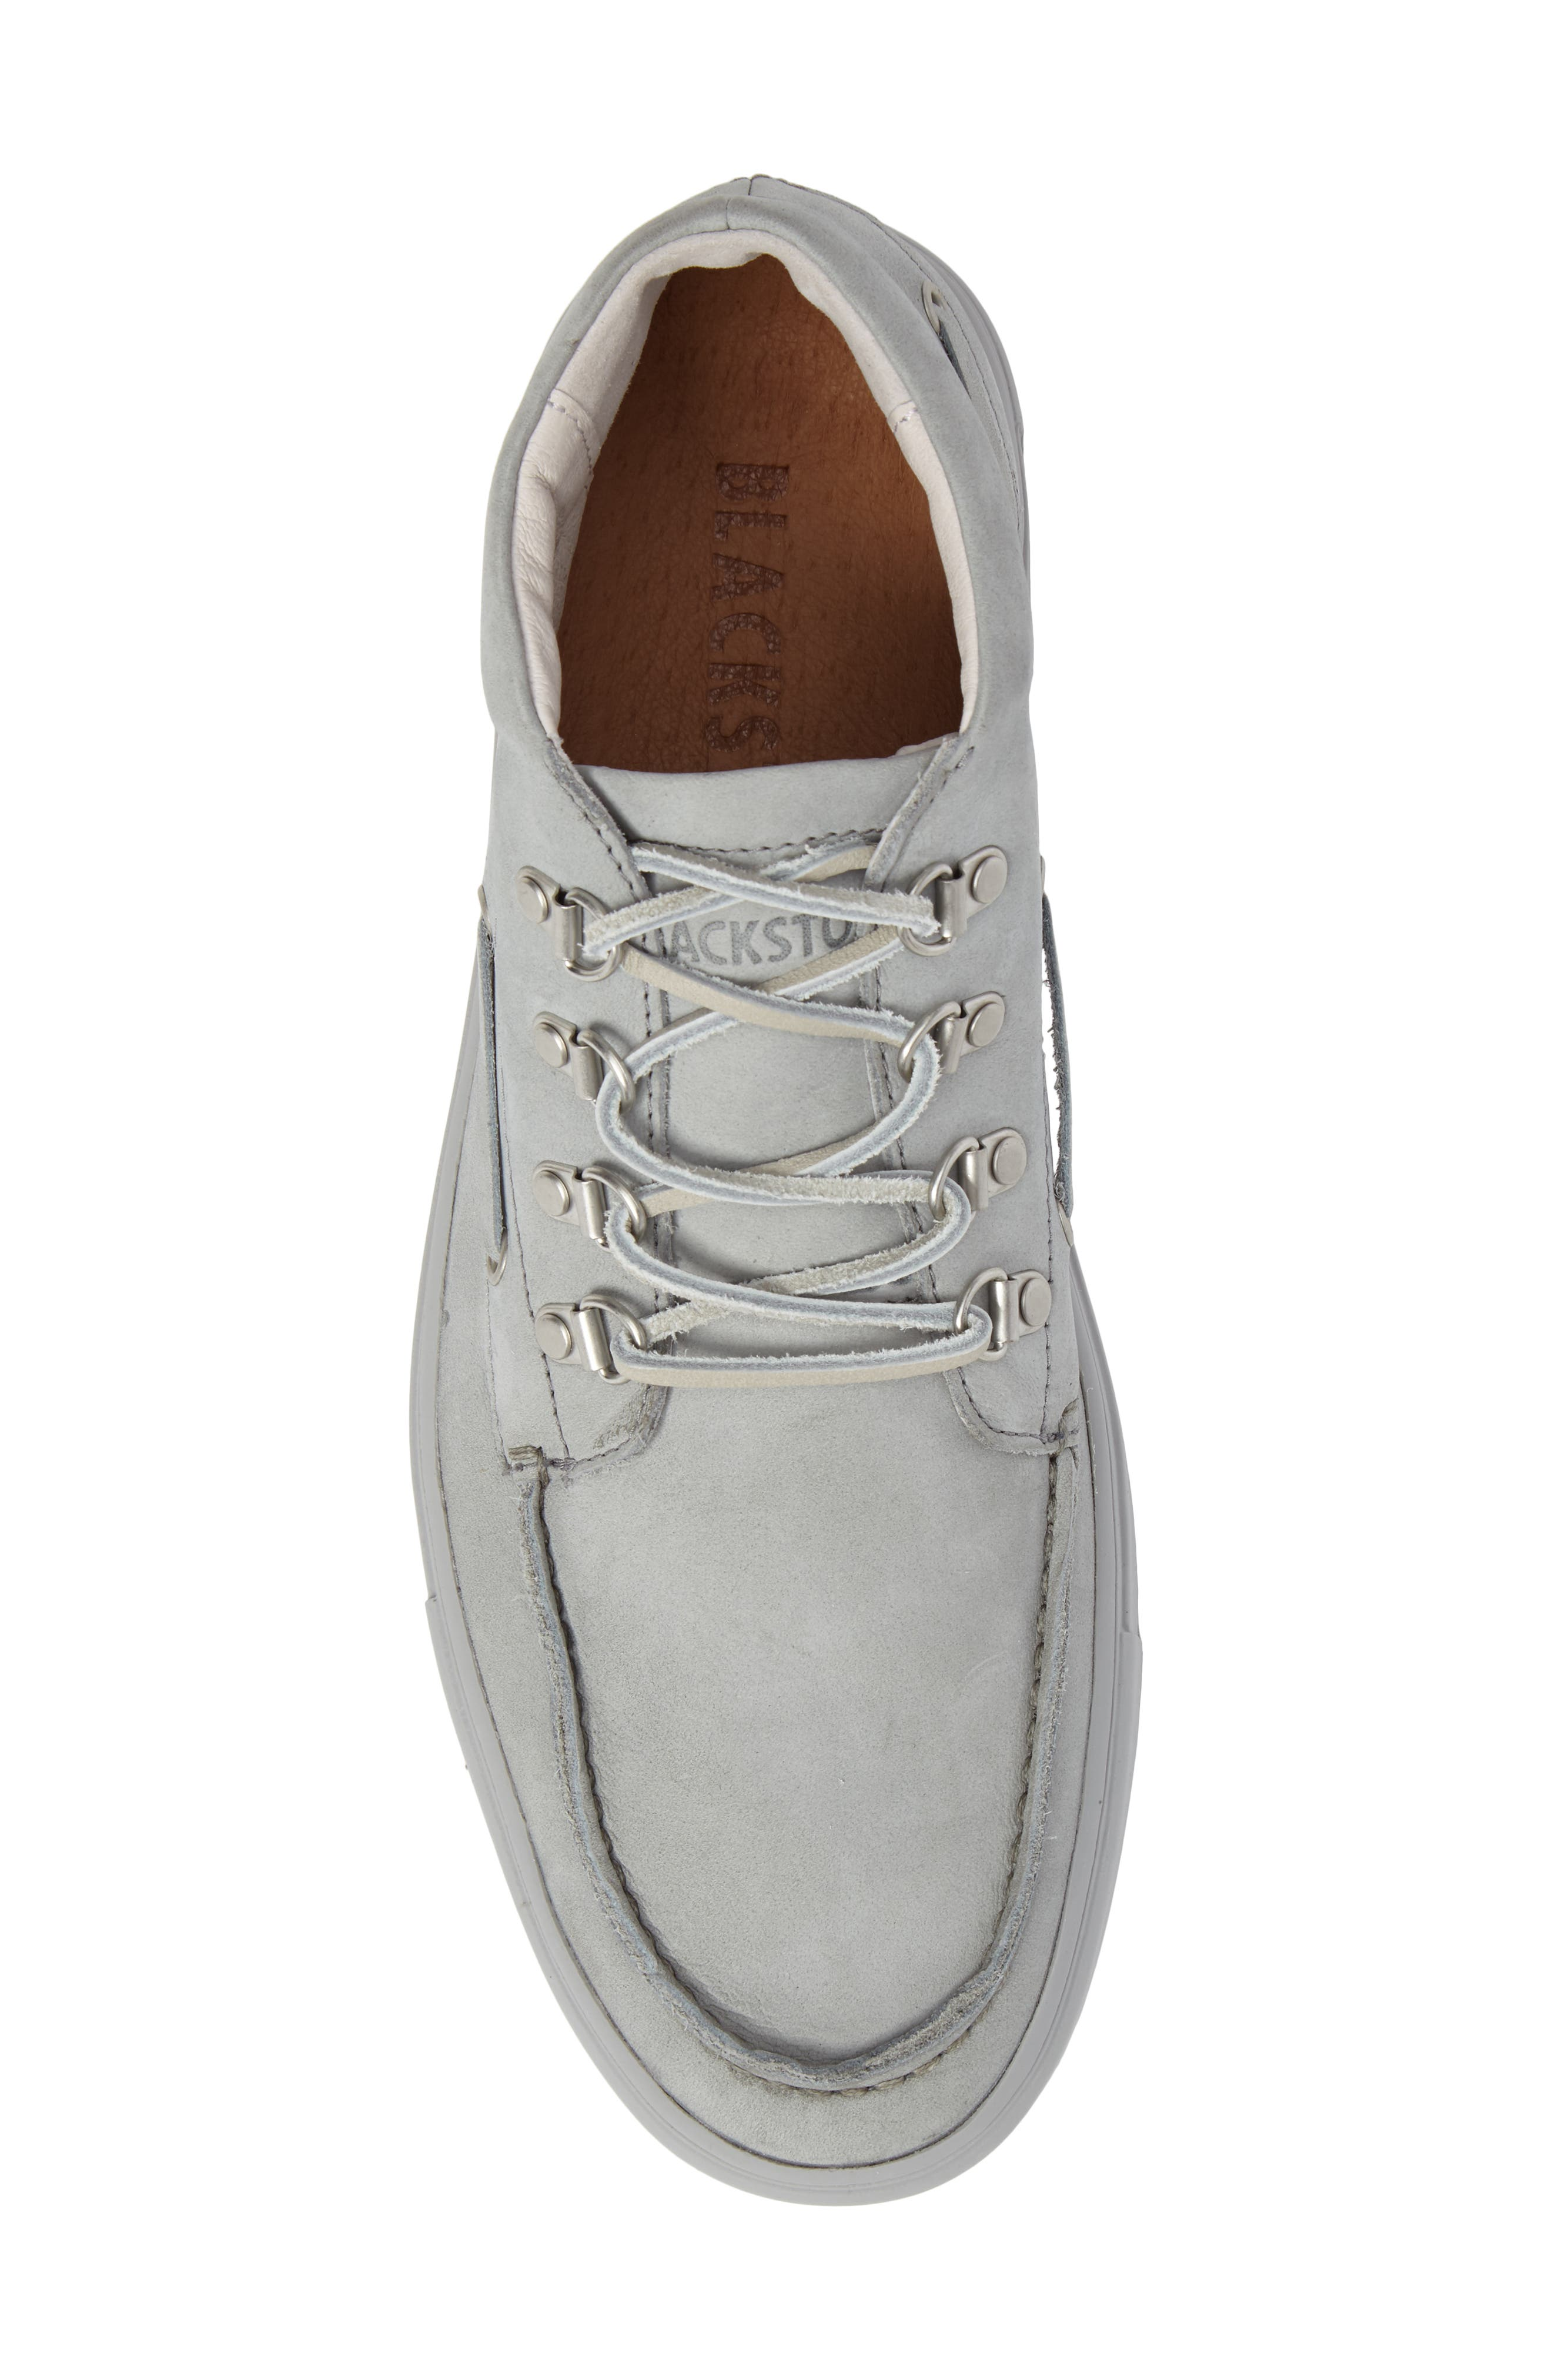 NM09 Mid Top Boat Sneaker,                             Alternate thumbnail 5, color,                             Limestone Leather